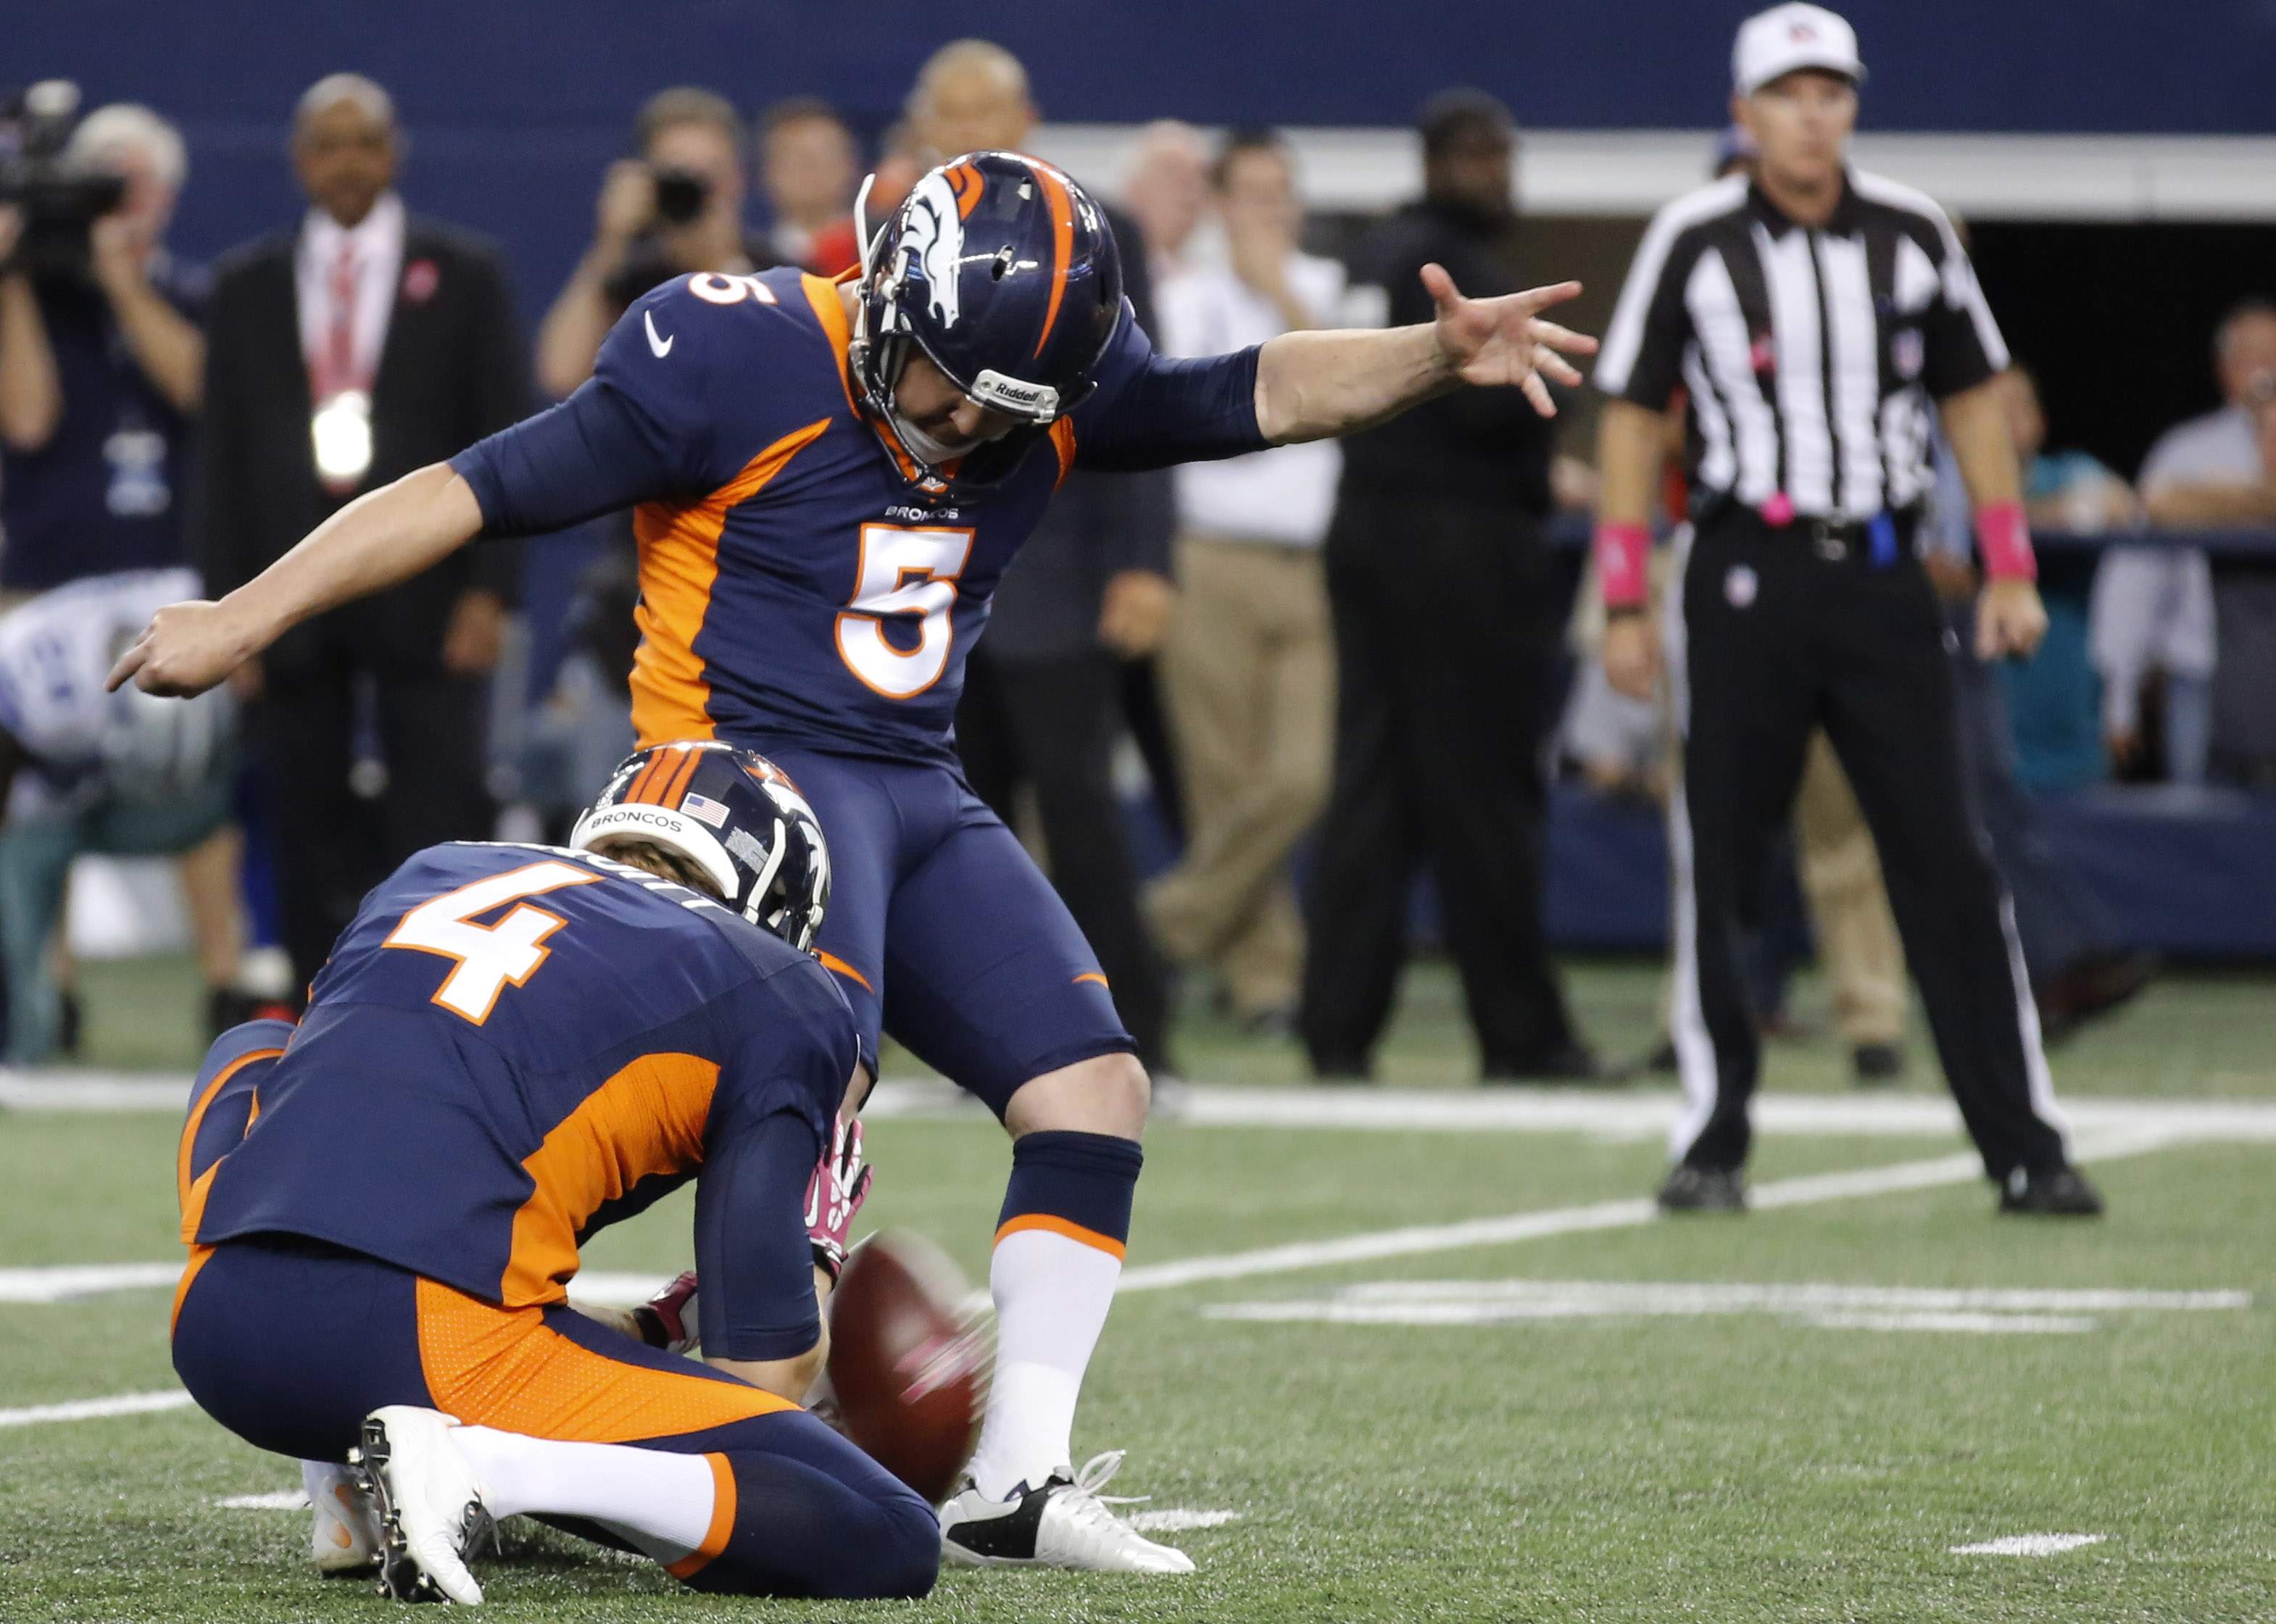 With Denver Broncos' Britton Colquitt (4) holding kicker Matt Prater (5) kicks the game-winning field goal against the Dallas Cowboys during the fourth quarter of an NFL football game Sunday, Oct. 6,2013, in Arlington, Texas. The Broncos won 51-48